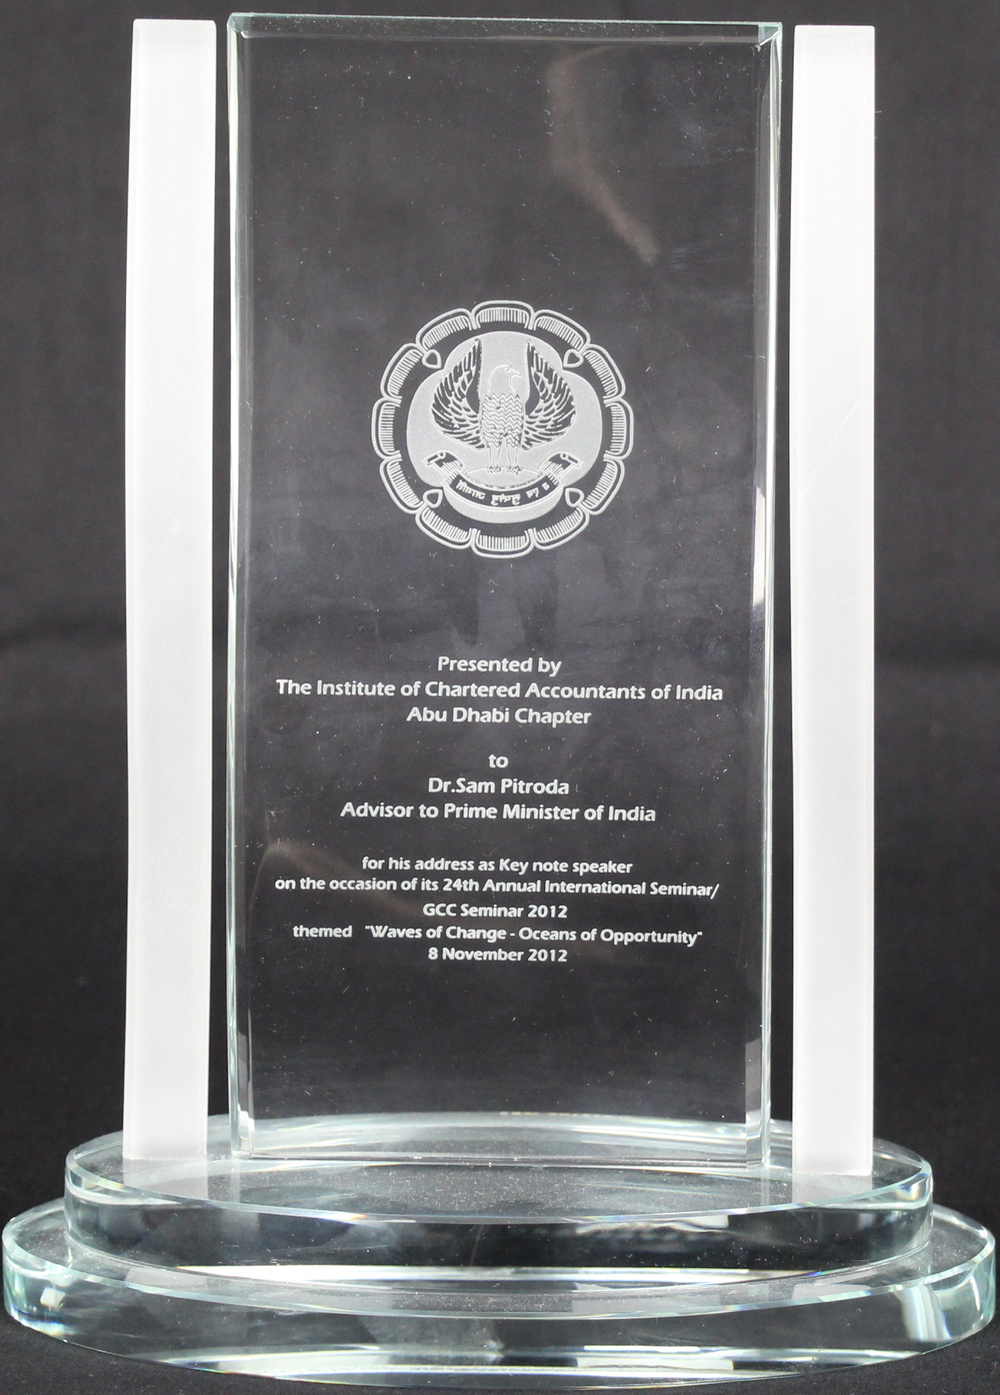 Keynote Speaker Recognition Award, The Institute of Chartered Accountants of India, Abu Dhabi Chapter, 2012